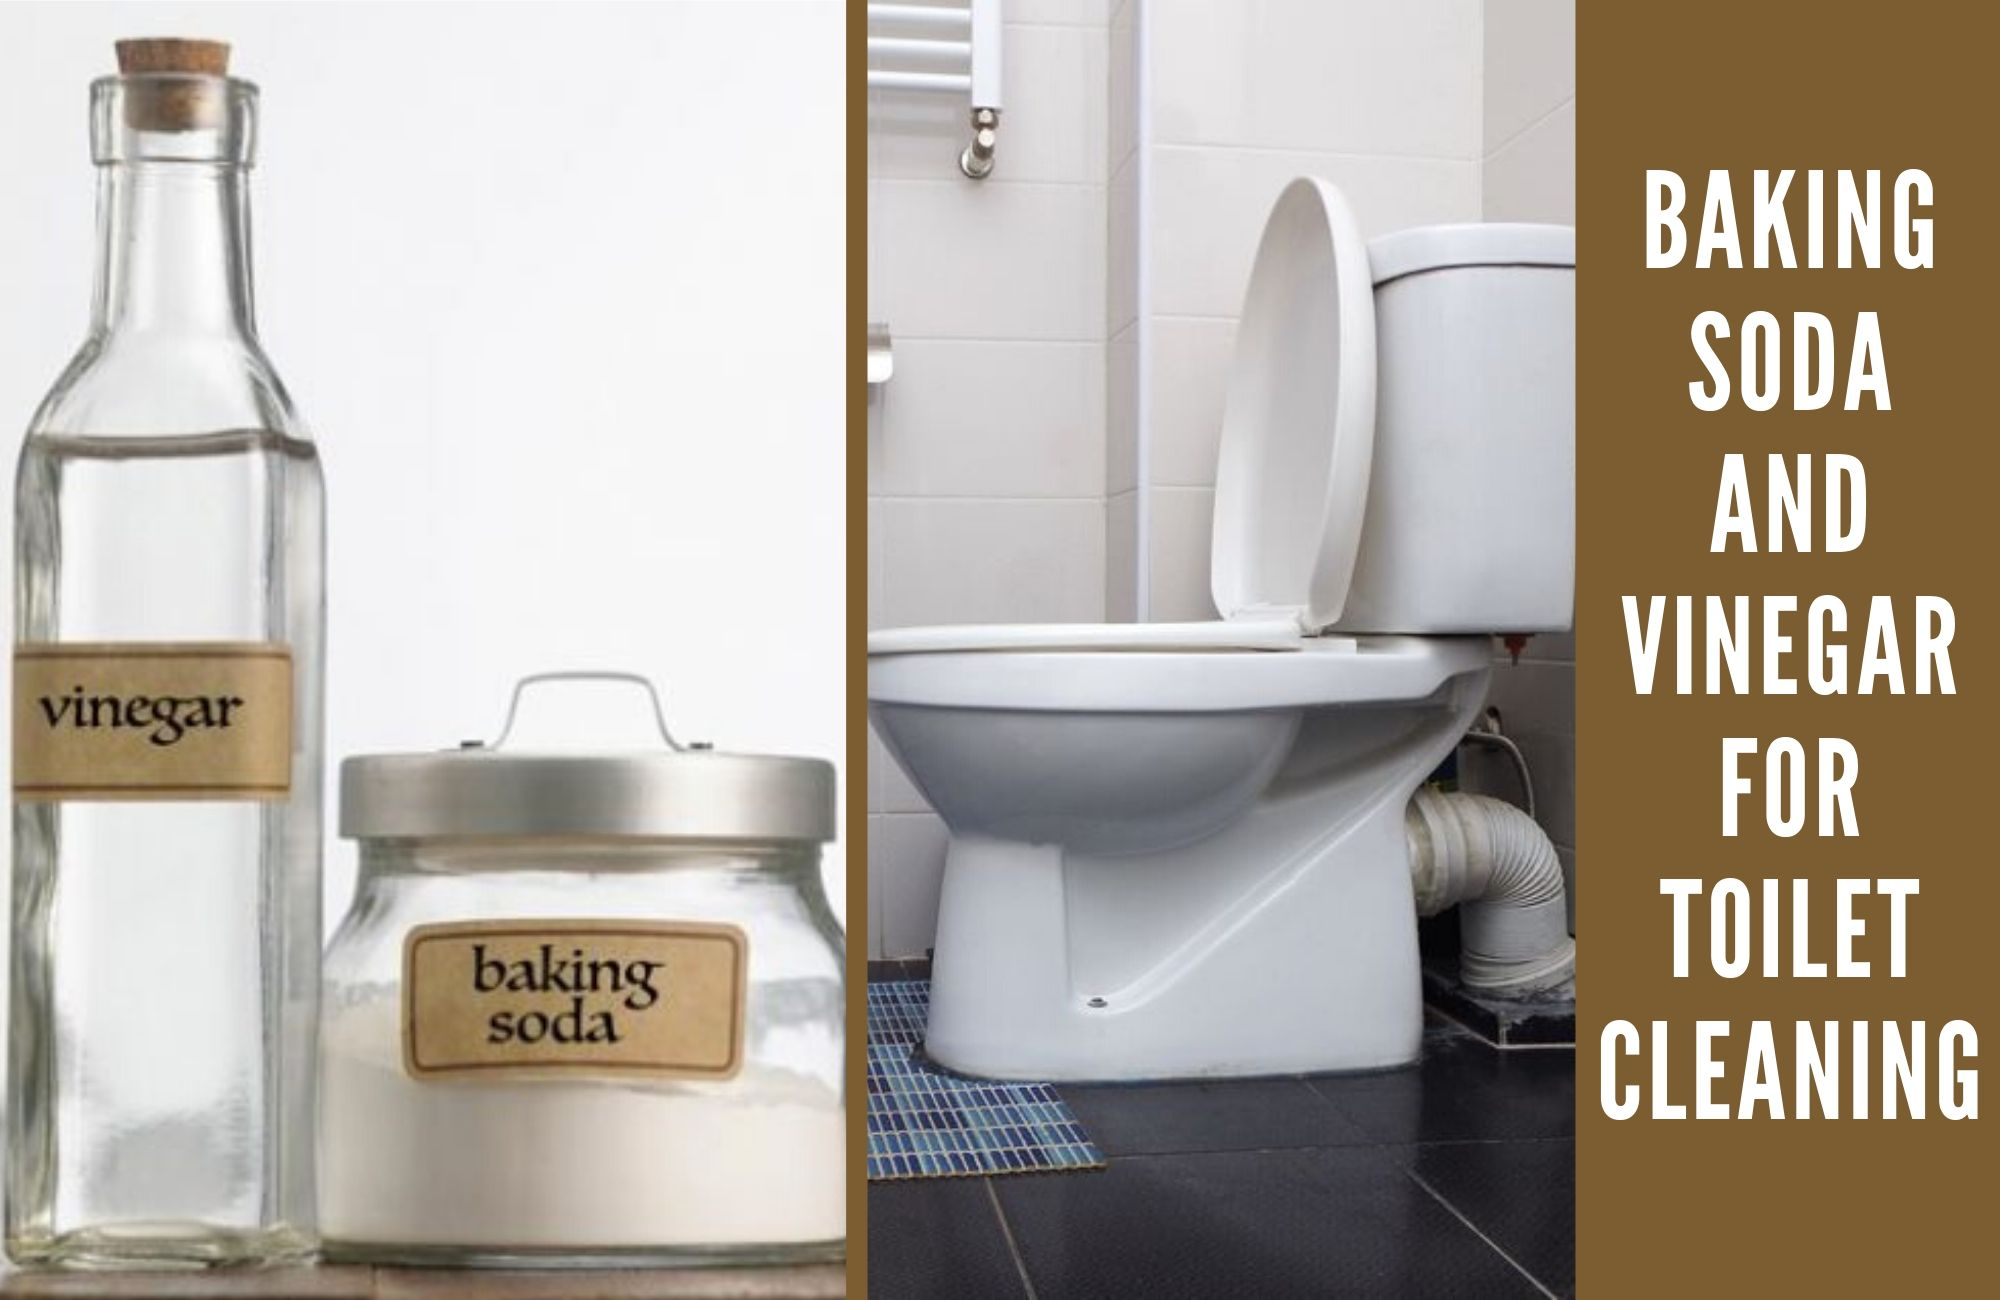 baking soda and vinegar for toilet cleaning